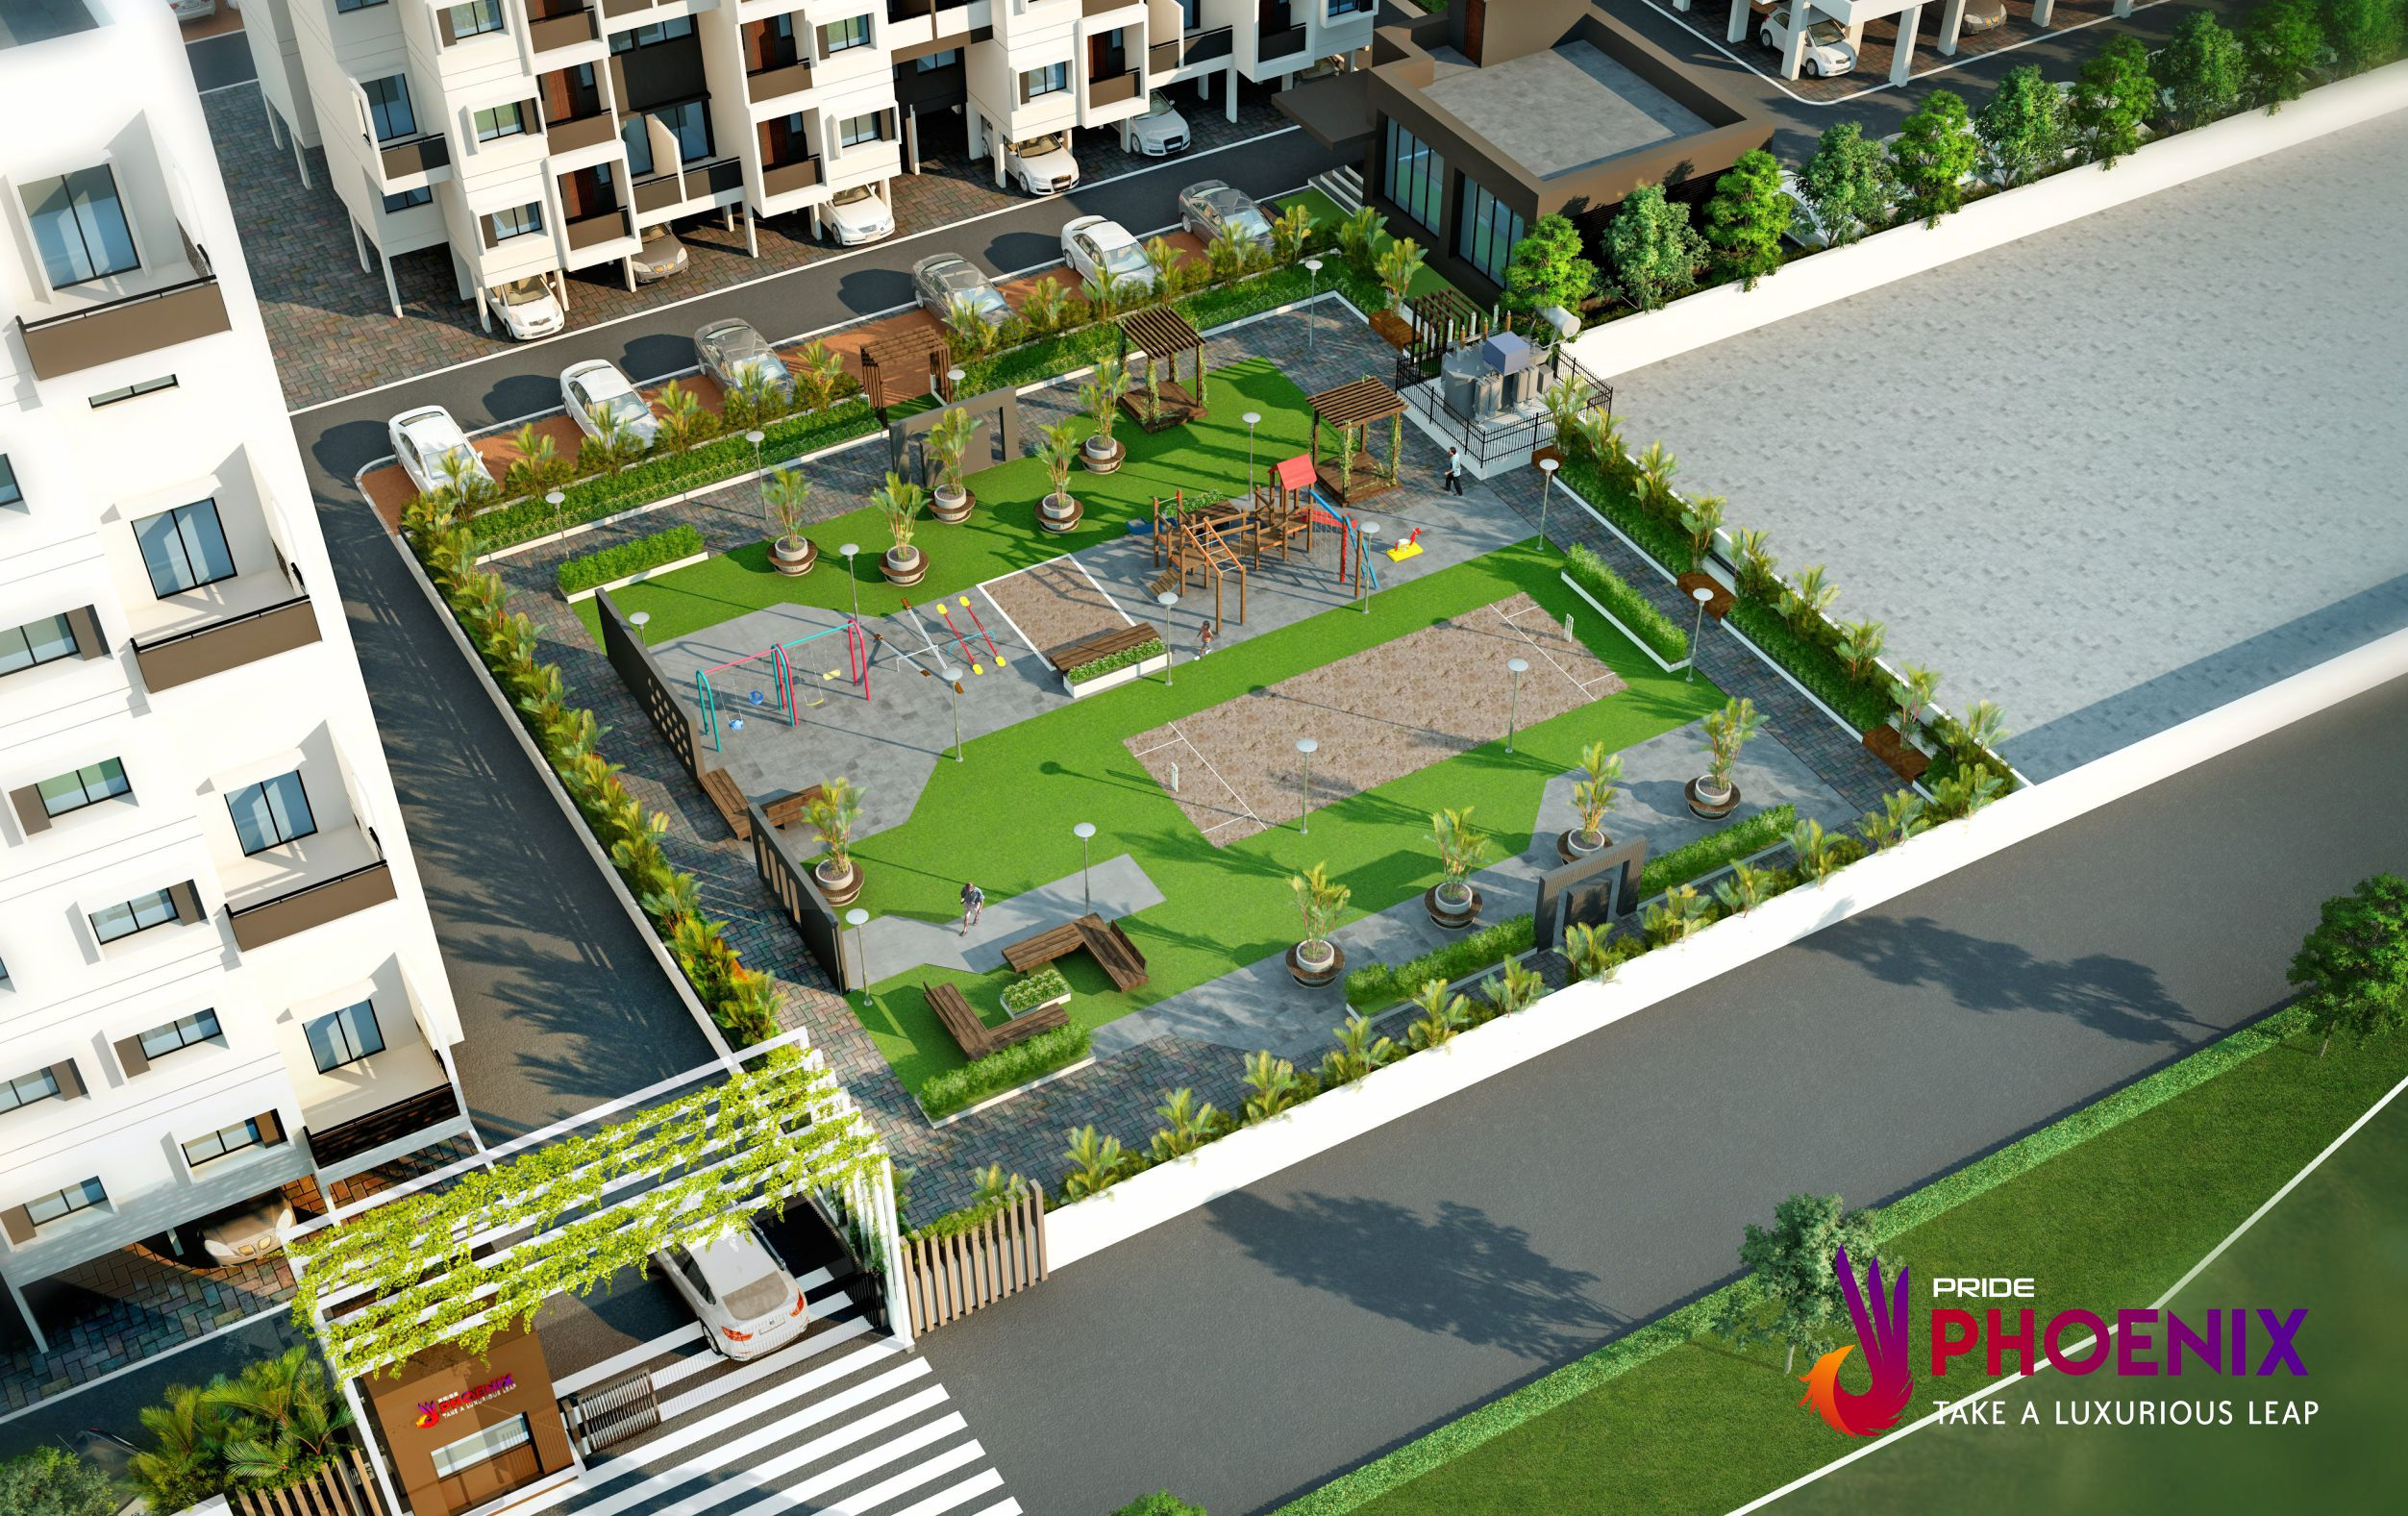 aurangabad flat rate garden area branded pride phoenix 1 2 3 bhk flat with amenities pride phoenix